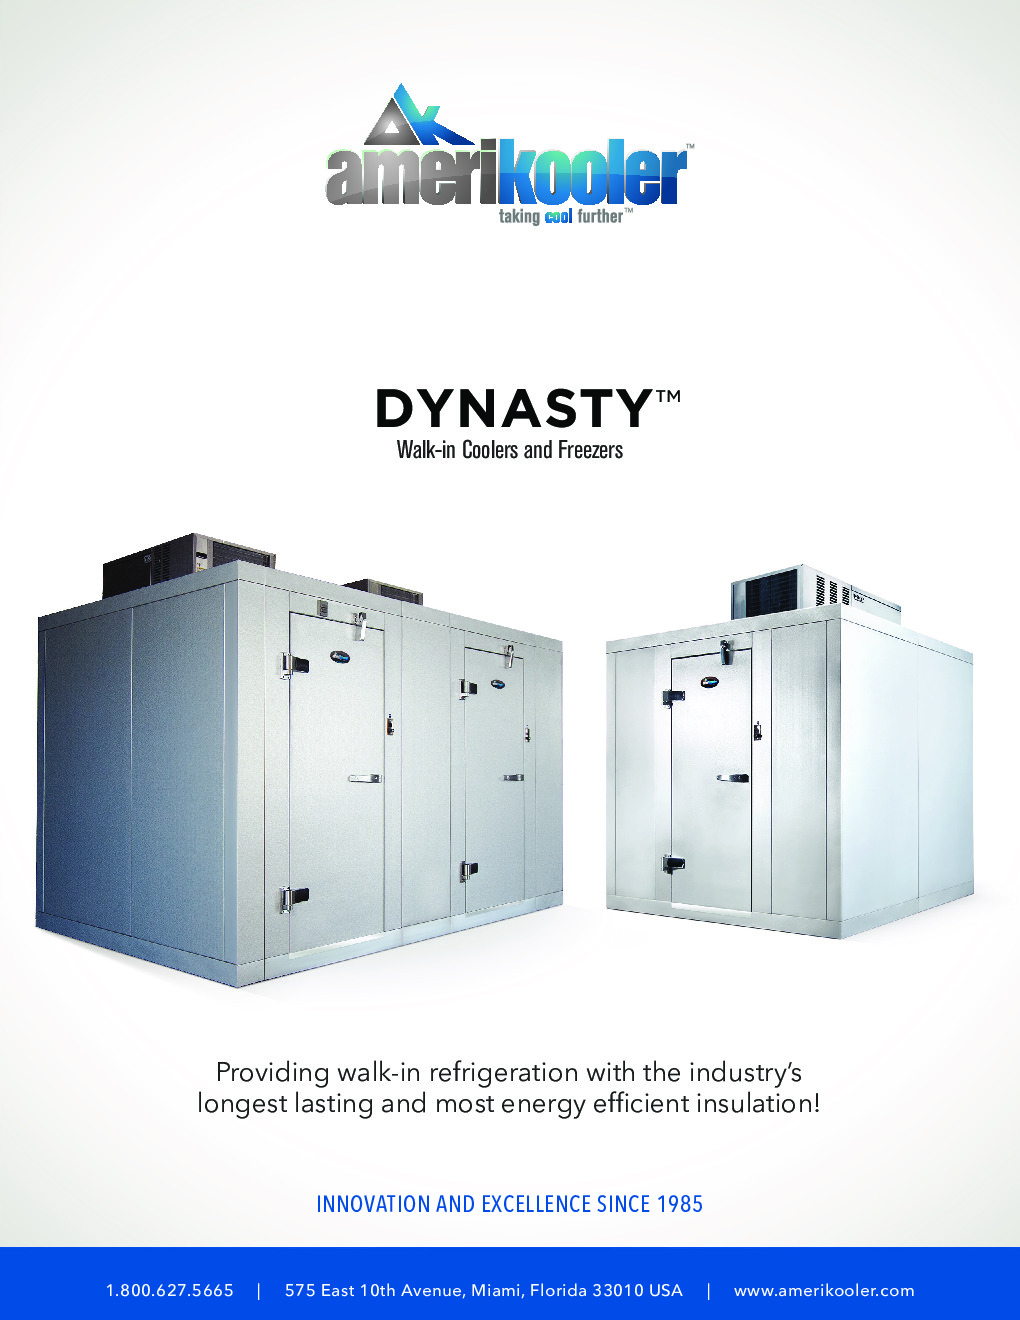 AmeriKooler DW091277F-4/8-RM 9' X 12' Walk-In Cooler, 8' L Cooler with Floor and 4' L Freezer, Remote